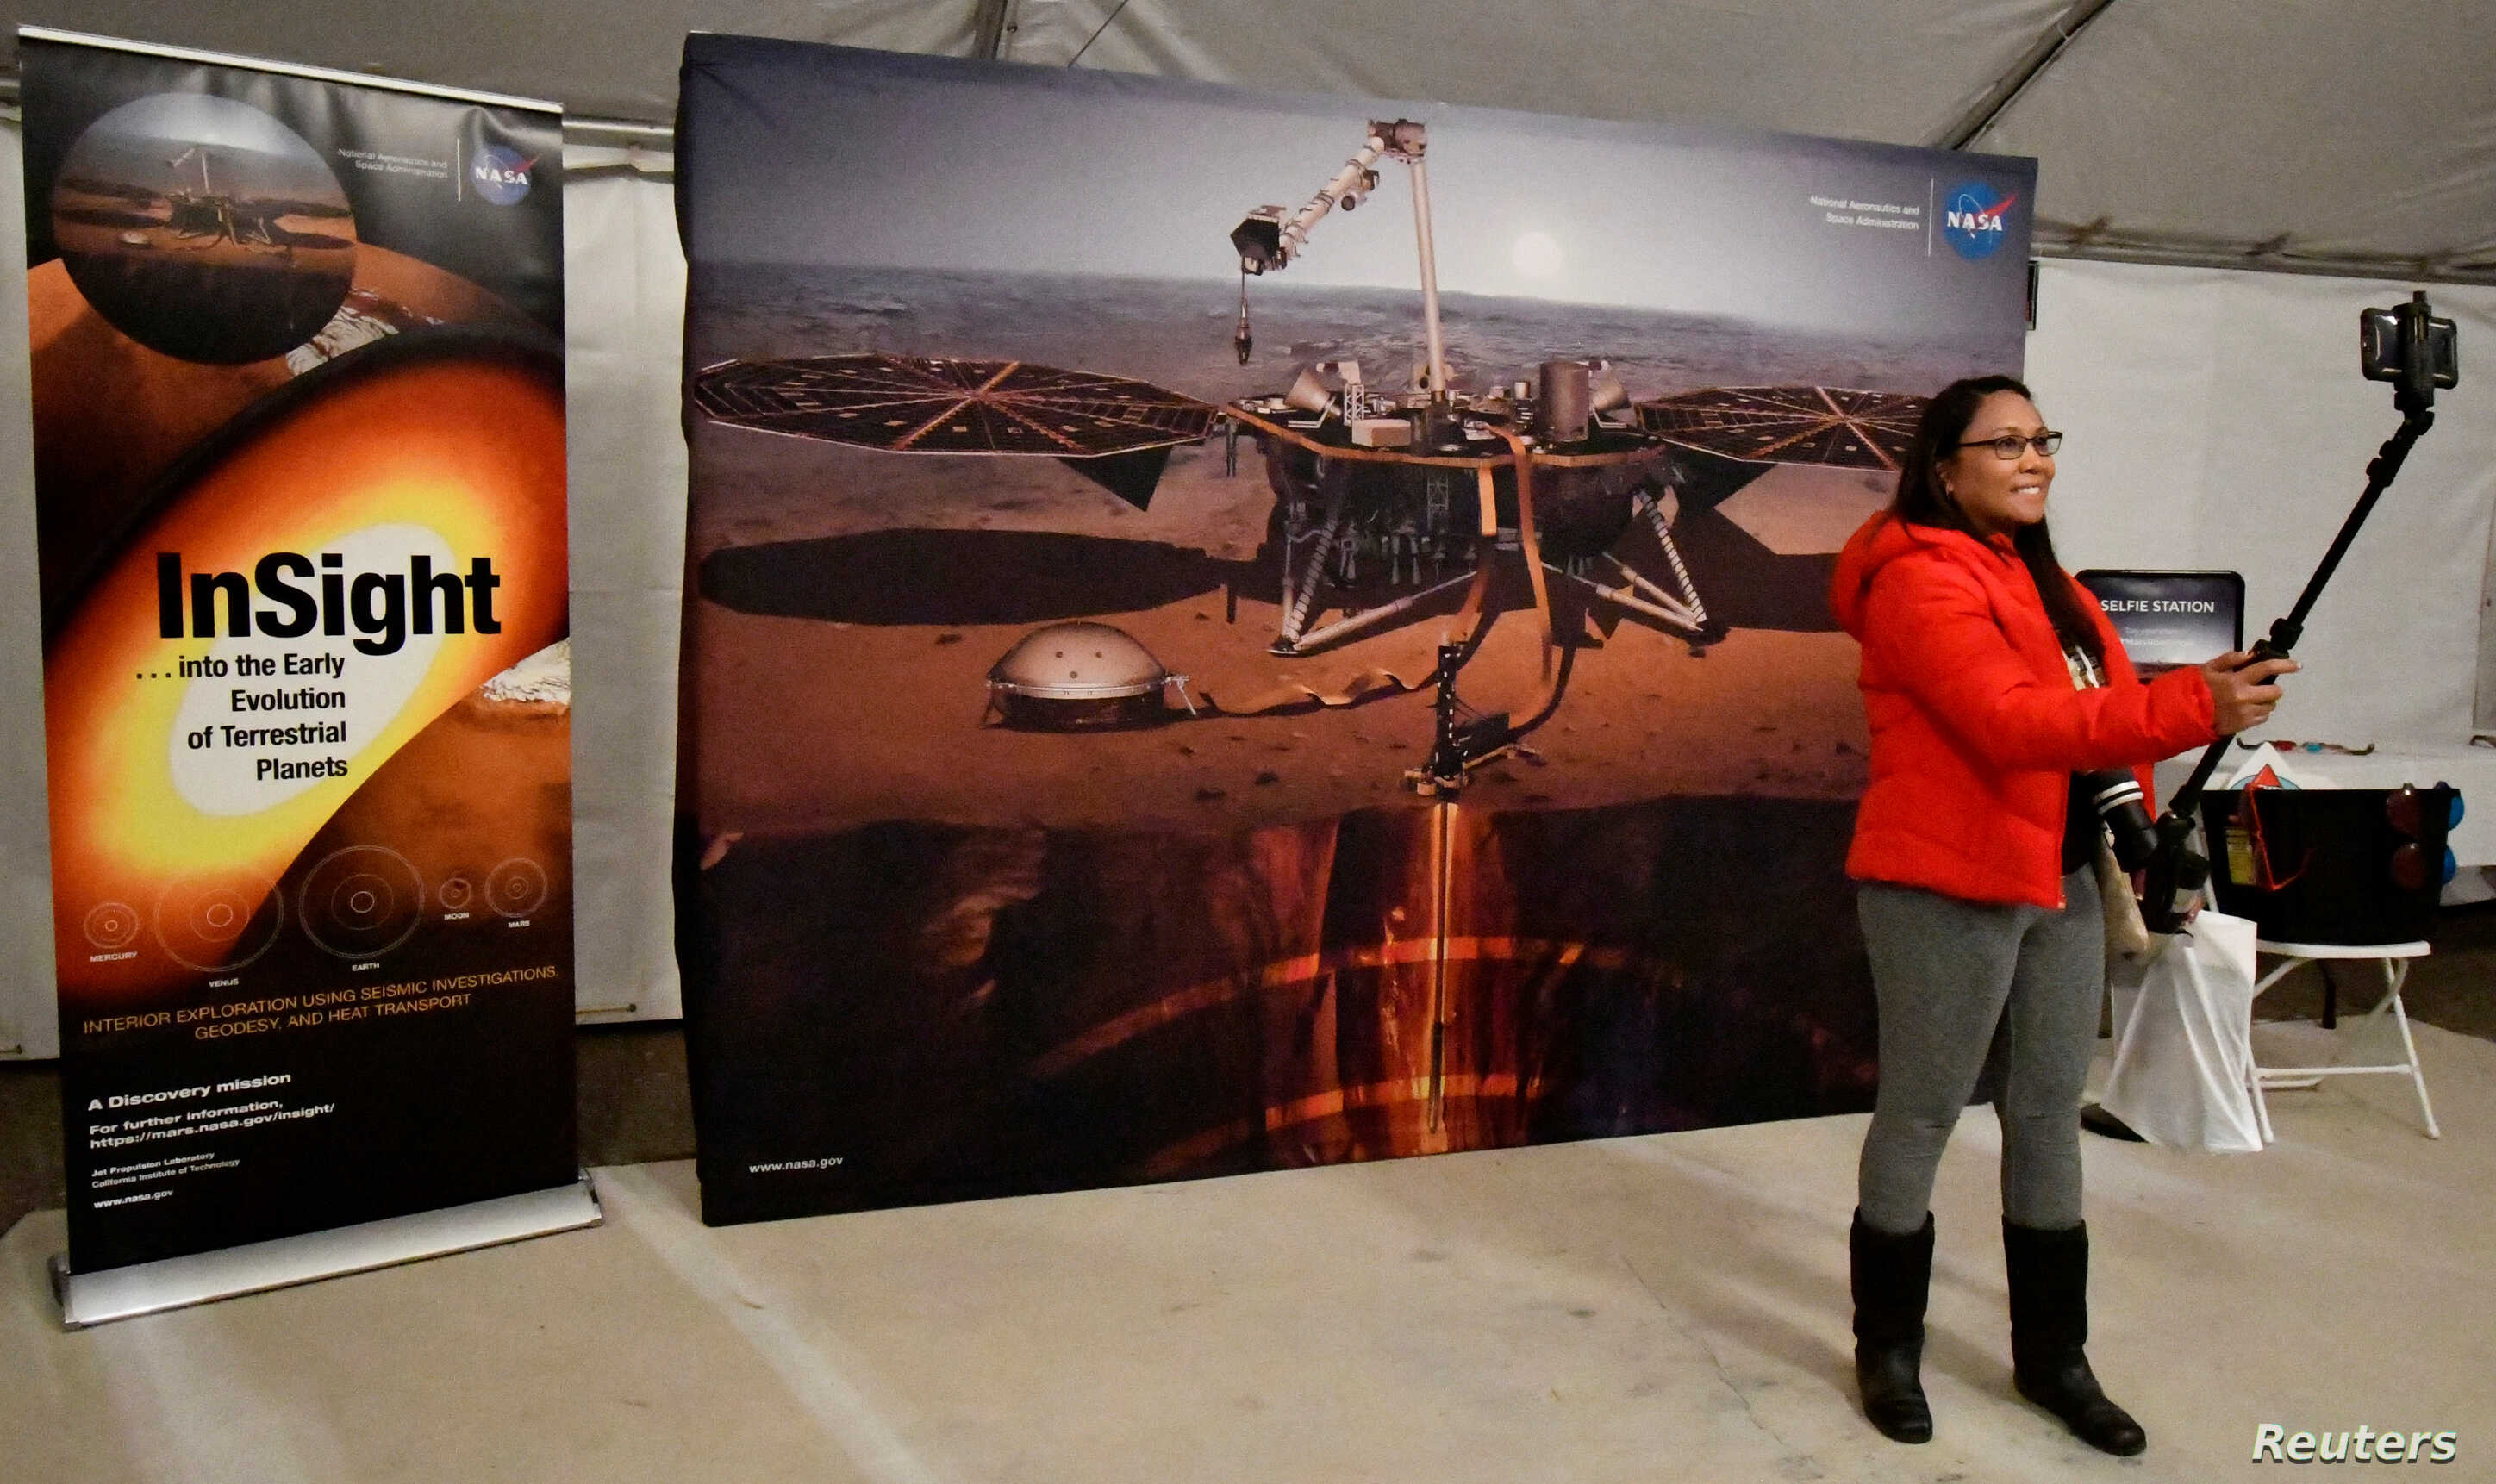 FILE - A visitor records herself at a NASA display at the Lompoc Airport before the launch of a United Launch Alliance Atlas V rocket carrying NASA's InSight Mars lander, which lifted off from Vandenberg Air Force Base in California, May 5, 2018.